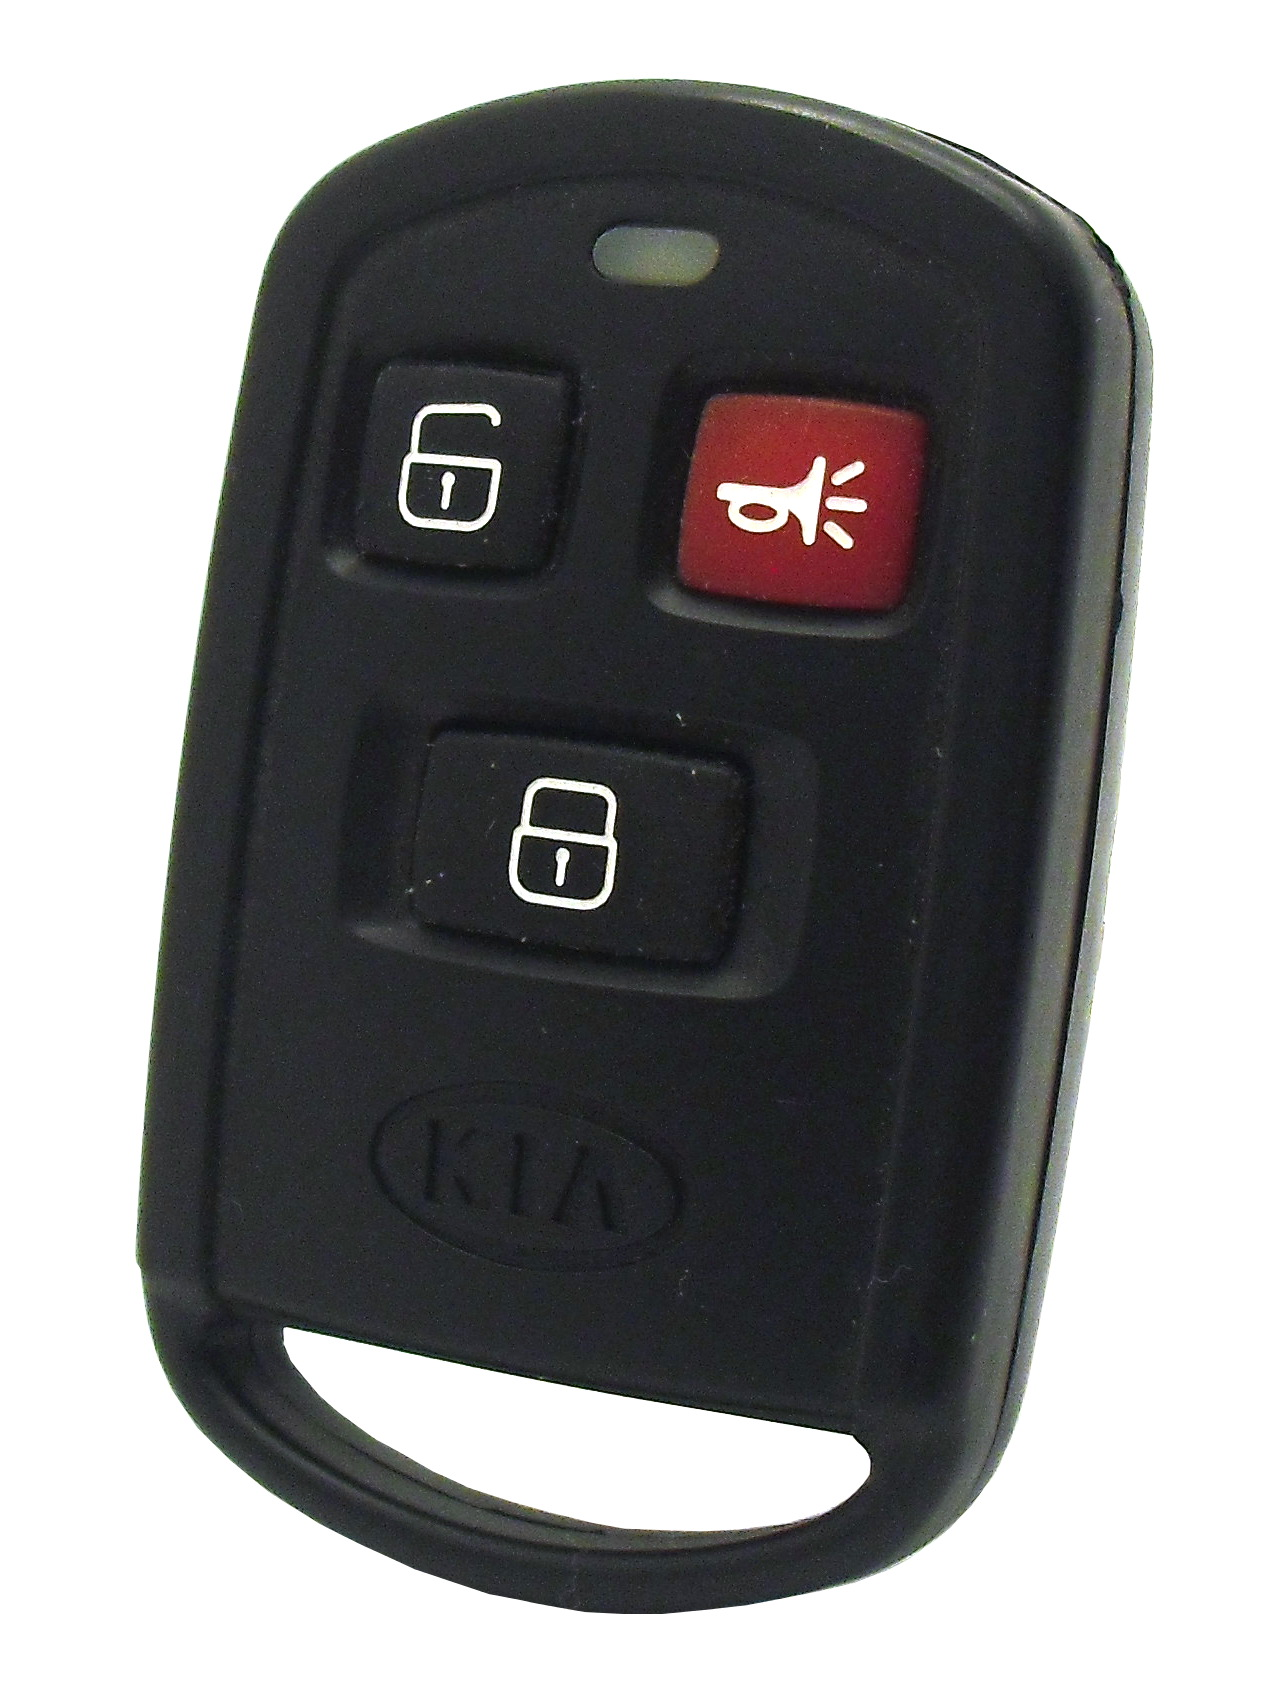 Kia Keyless Entry Car Remote - 3 Button